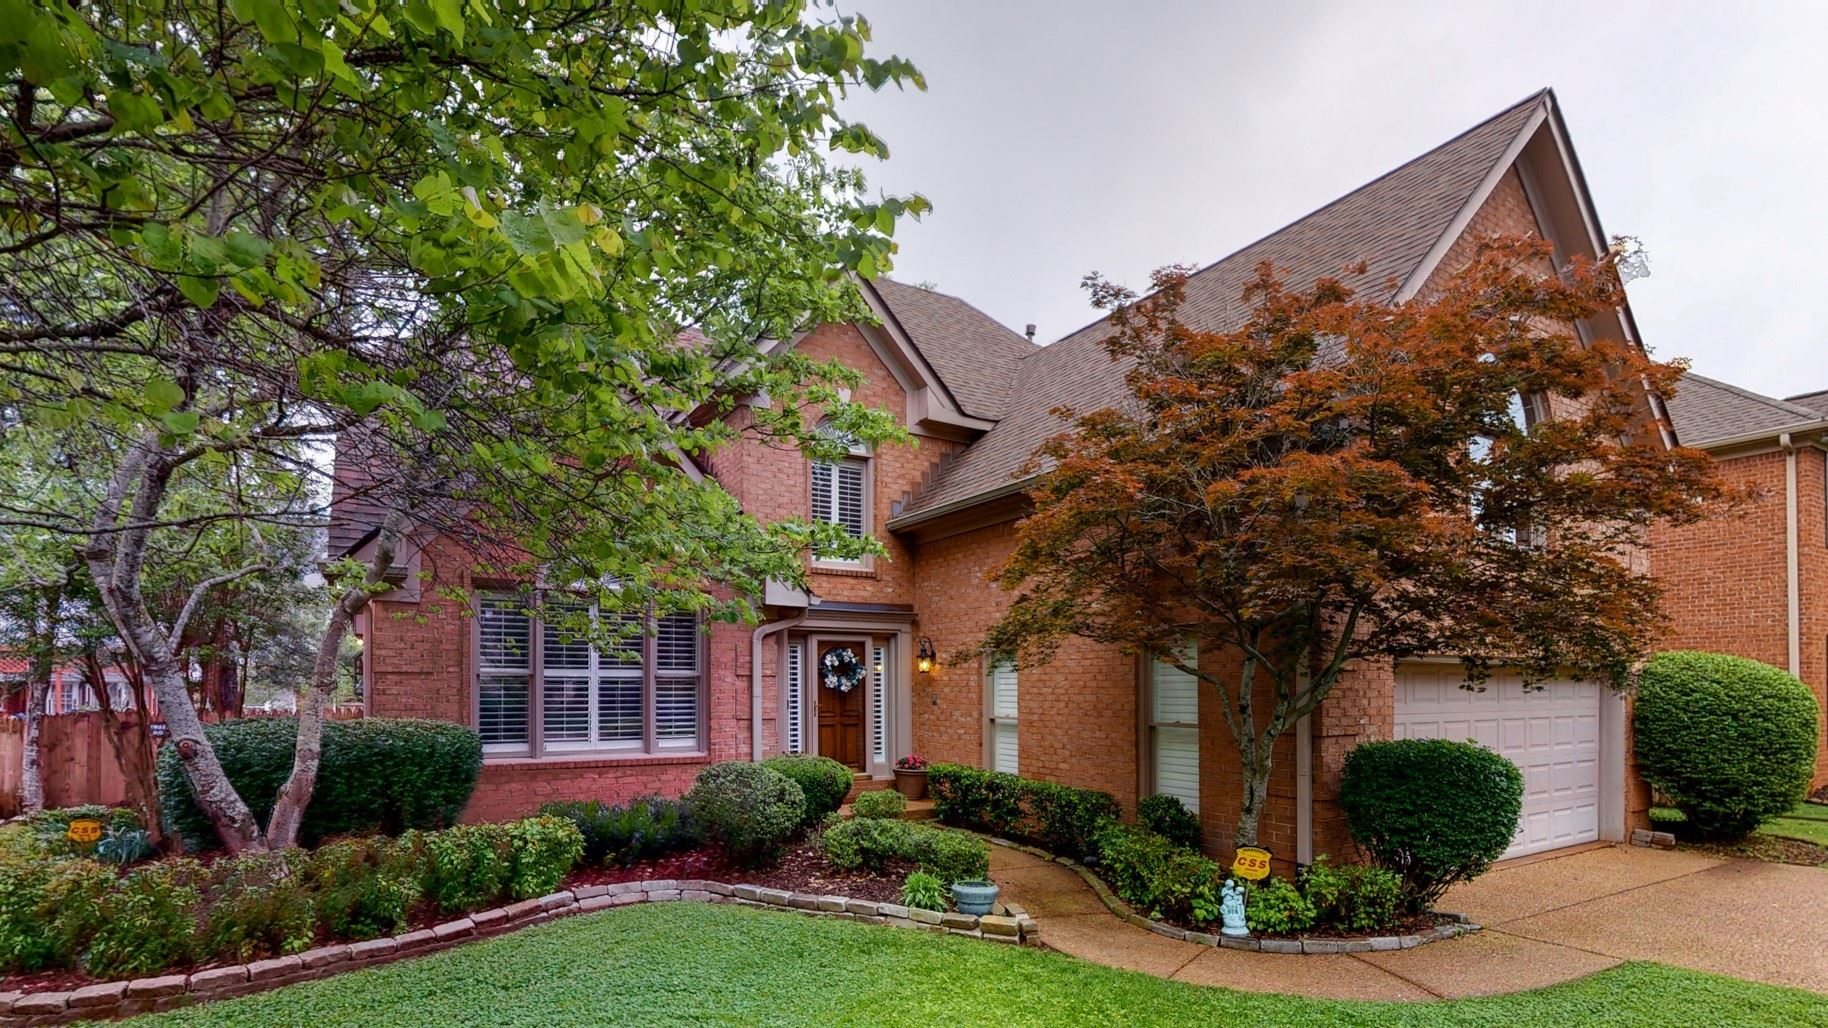 Photo of 279 Rivermont Circle, Franklin, TN 37064 (MLS # 2245485)